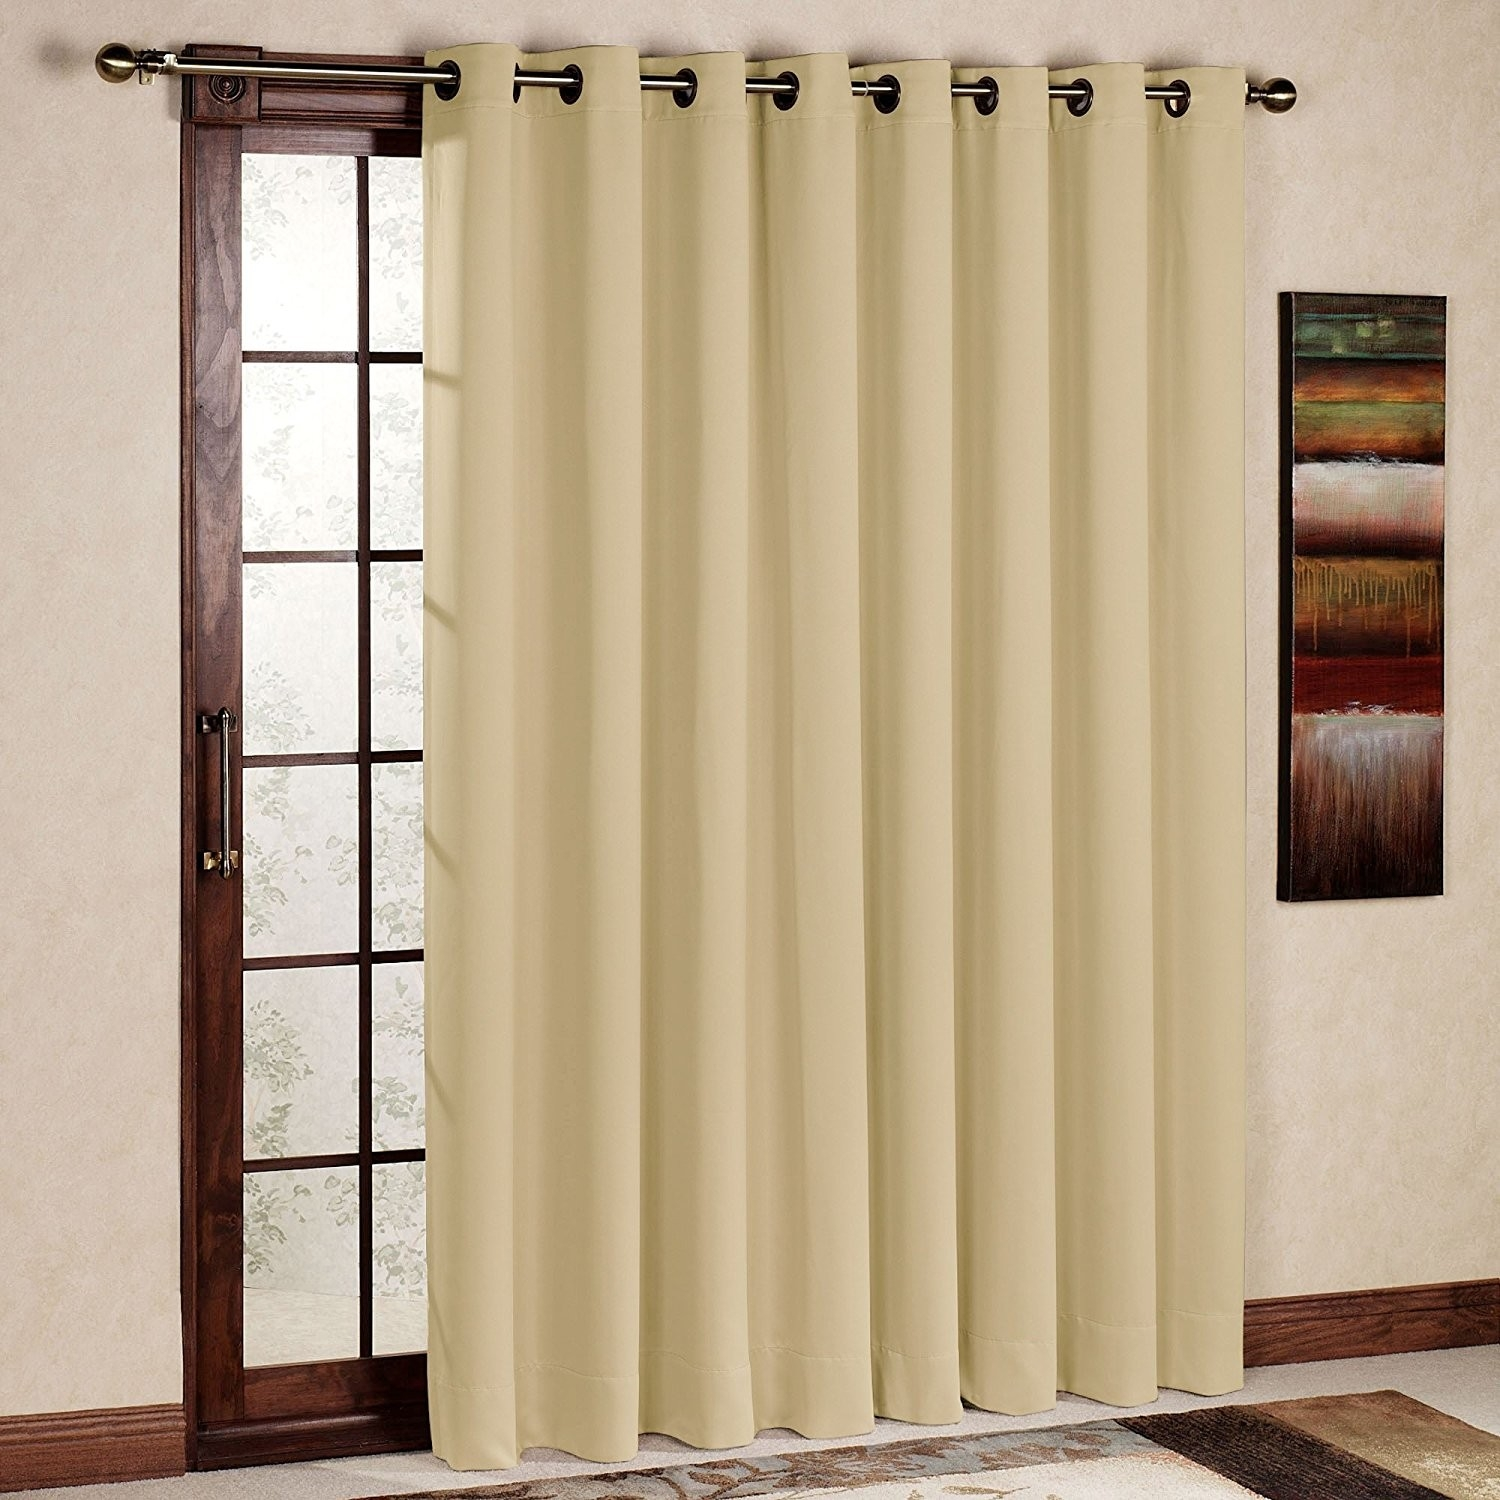 Sliding Door Insulated Curtainsthermal Curtainsextra Wide Regarding Extra Wide Thermal Curtains (Image 15 of 15)